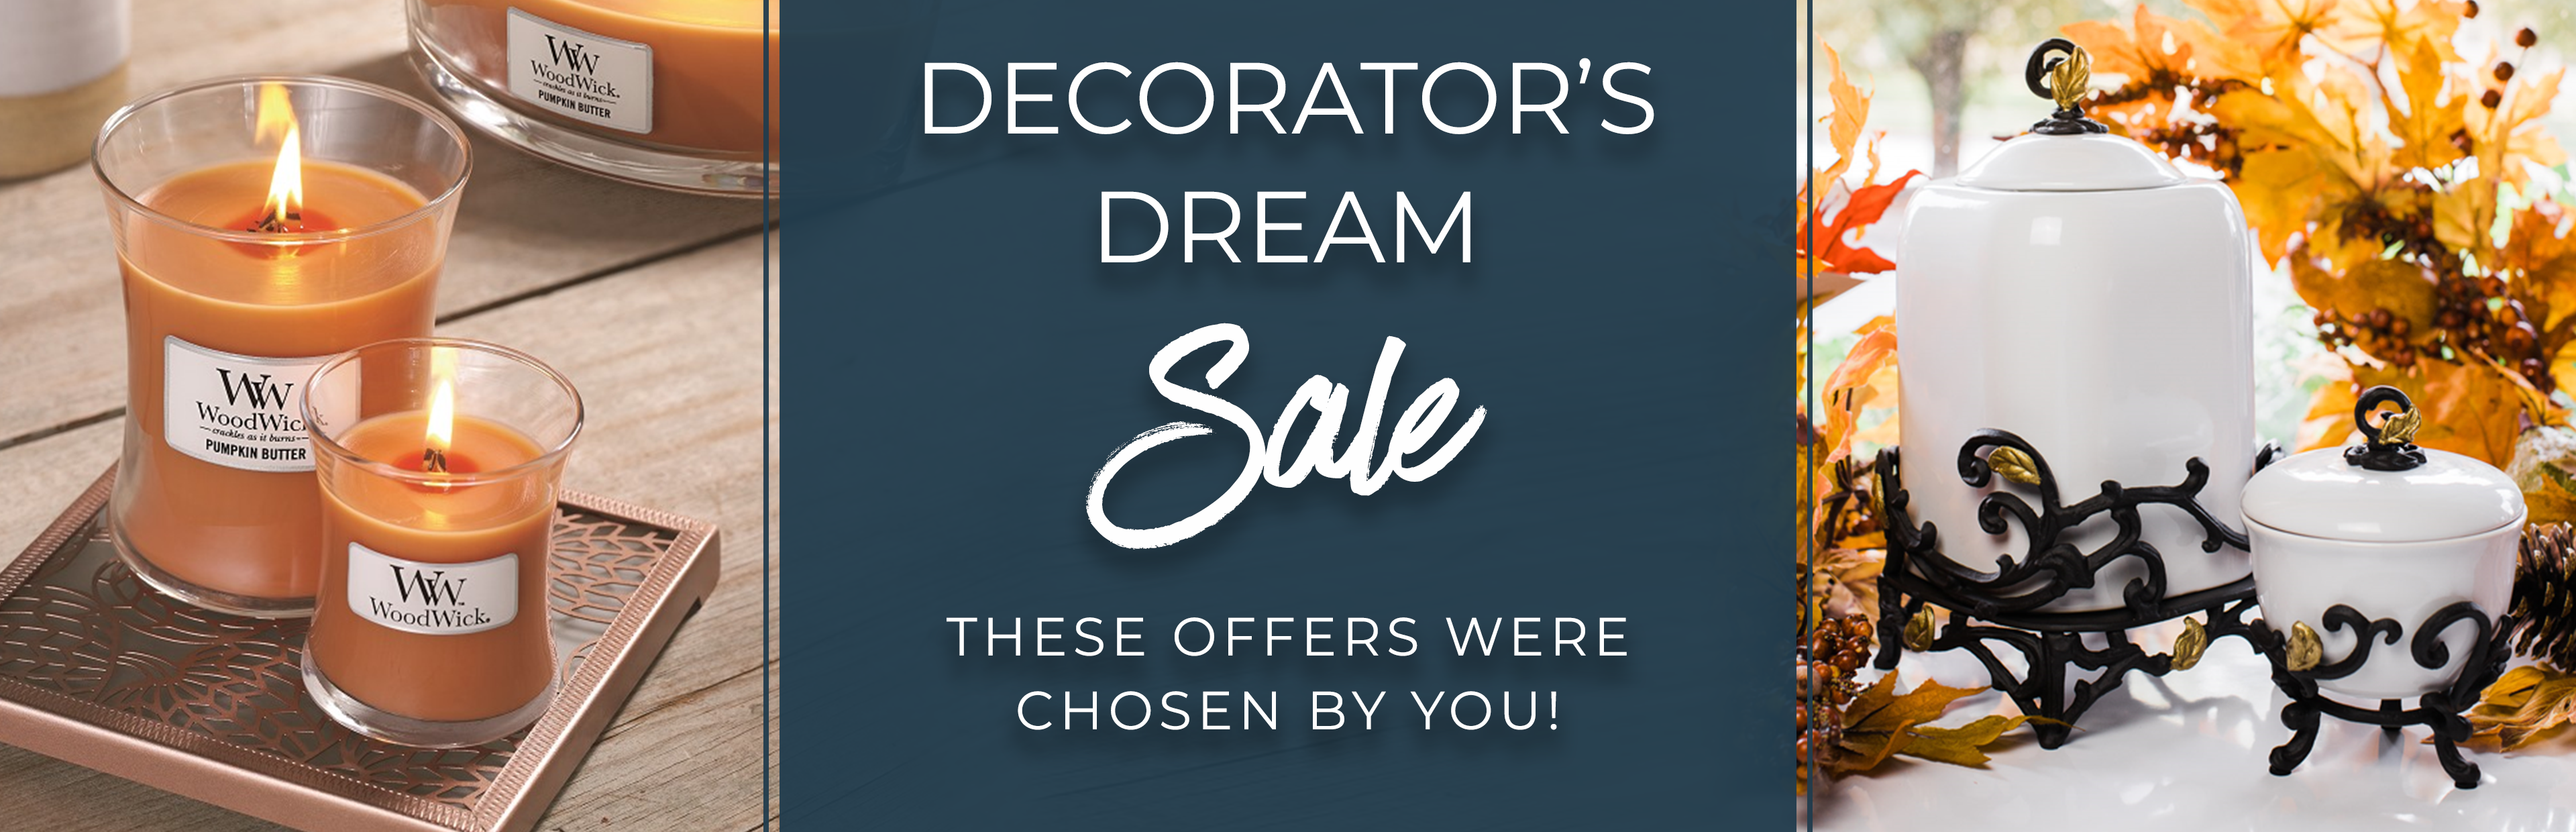 Decorators Dream Sale - These Offers were chosen by you